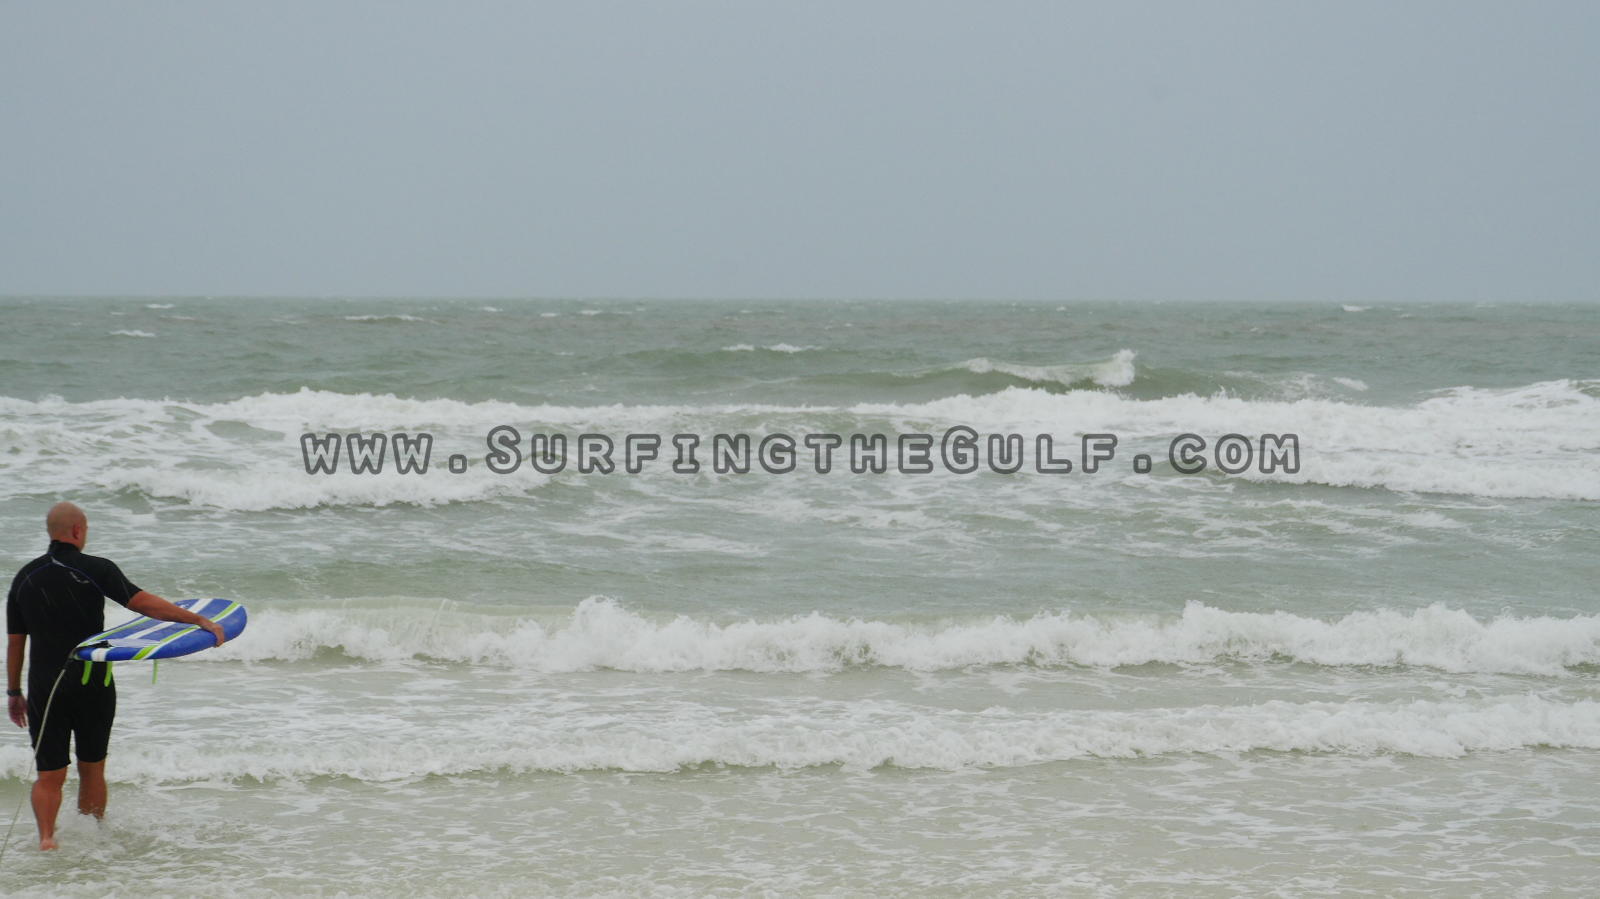 Surfingthegulf the best surfing website on the gulf coast april 2018best beachesfeaturedfloridaspring 2018surfsurf reportsurfs up surf reportsurferssurfingsurfing the gulftidesweatherwhite sand beacheswinds nvjuhfo Image collections